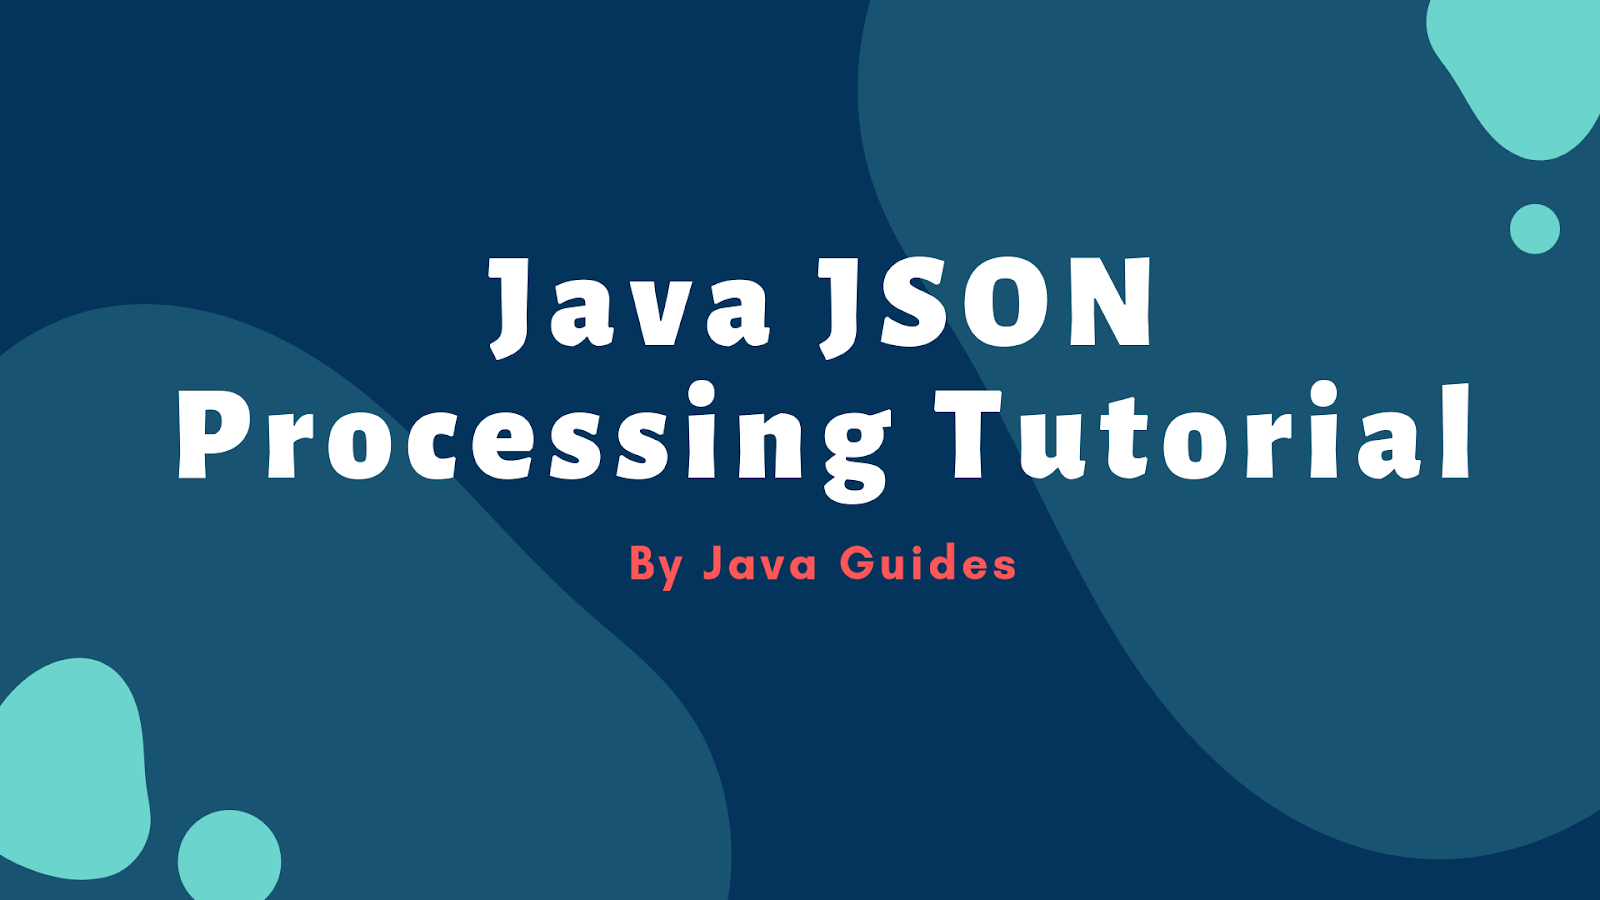 Java JSON Processing Tutorial